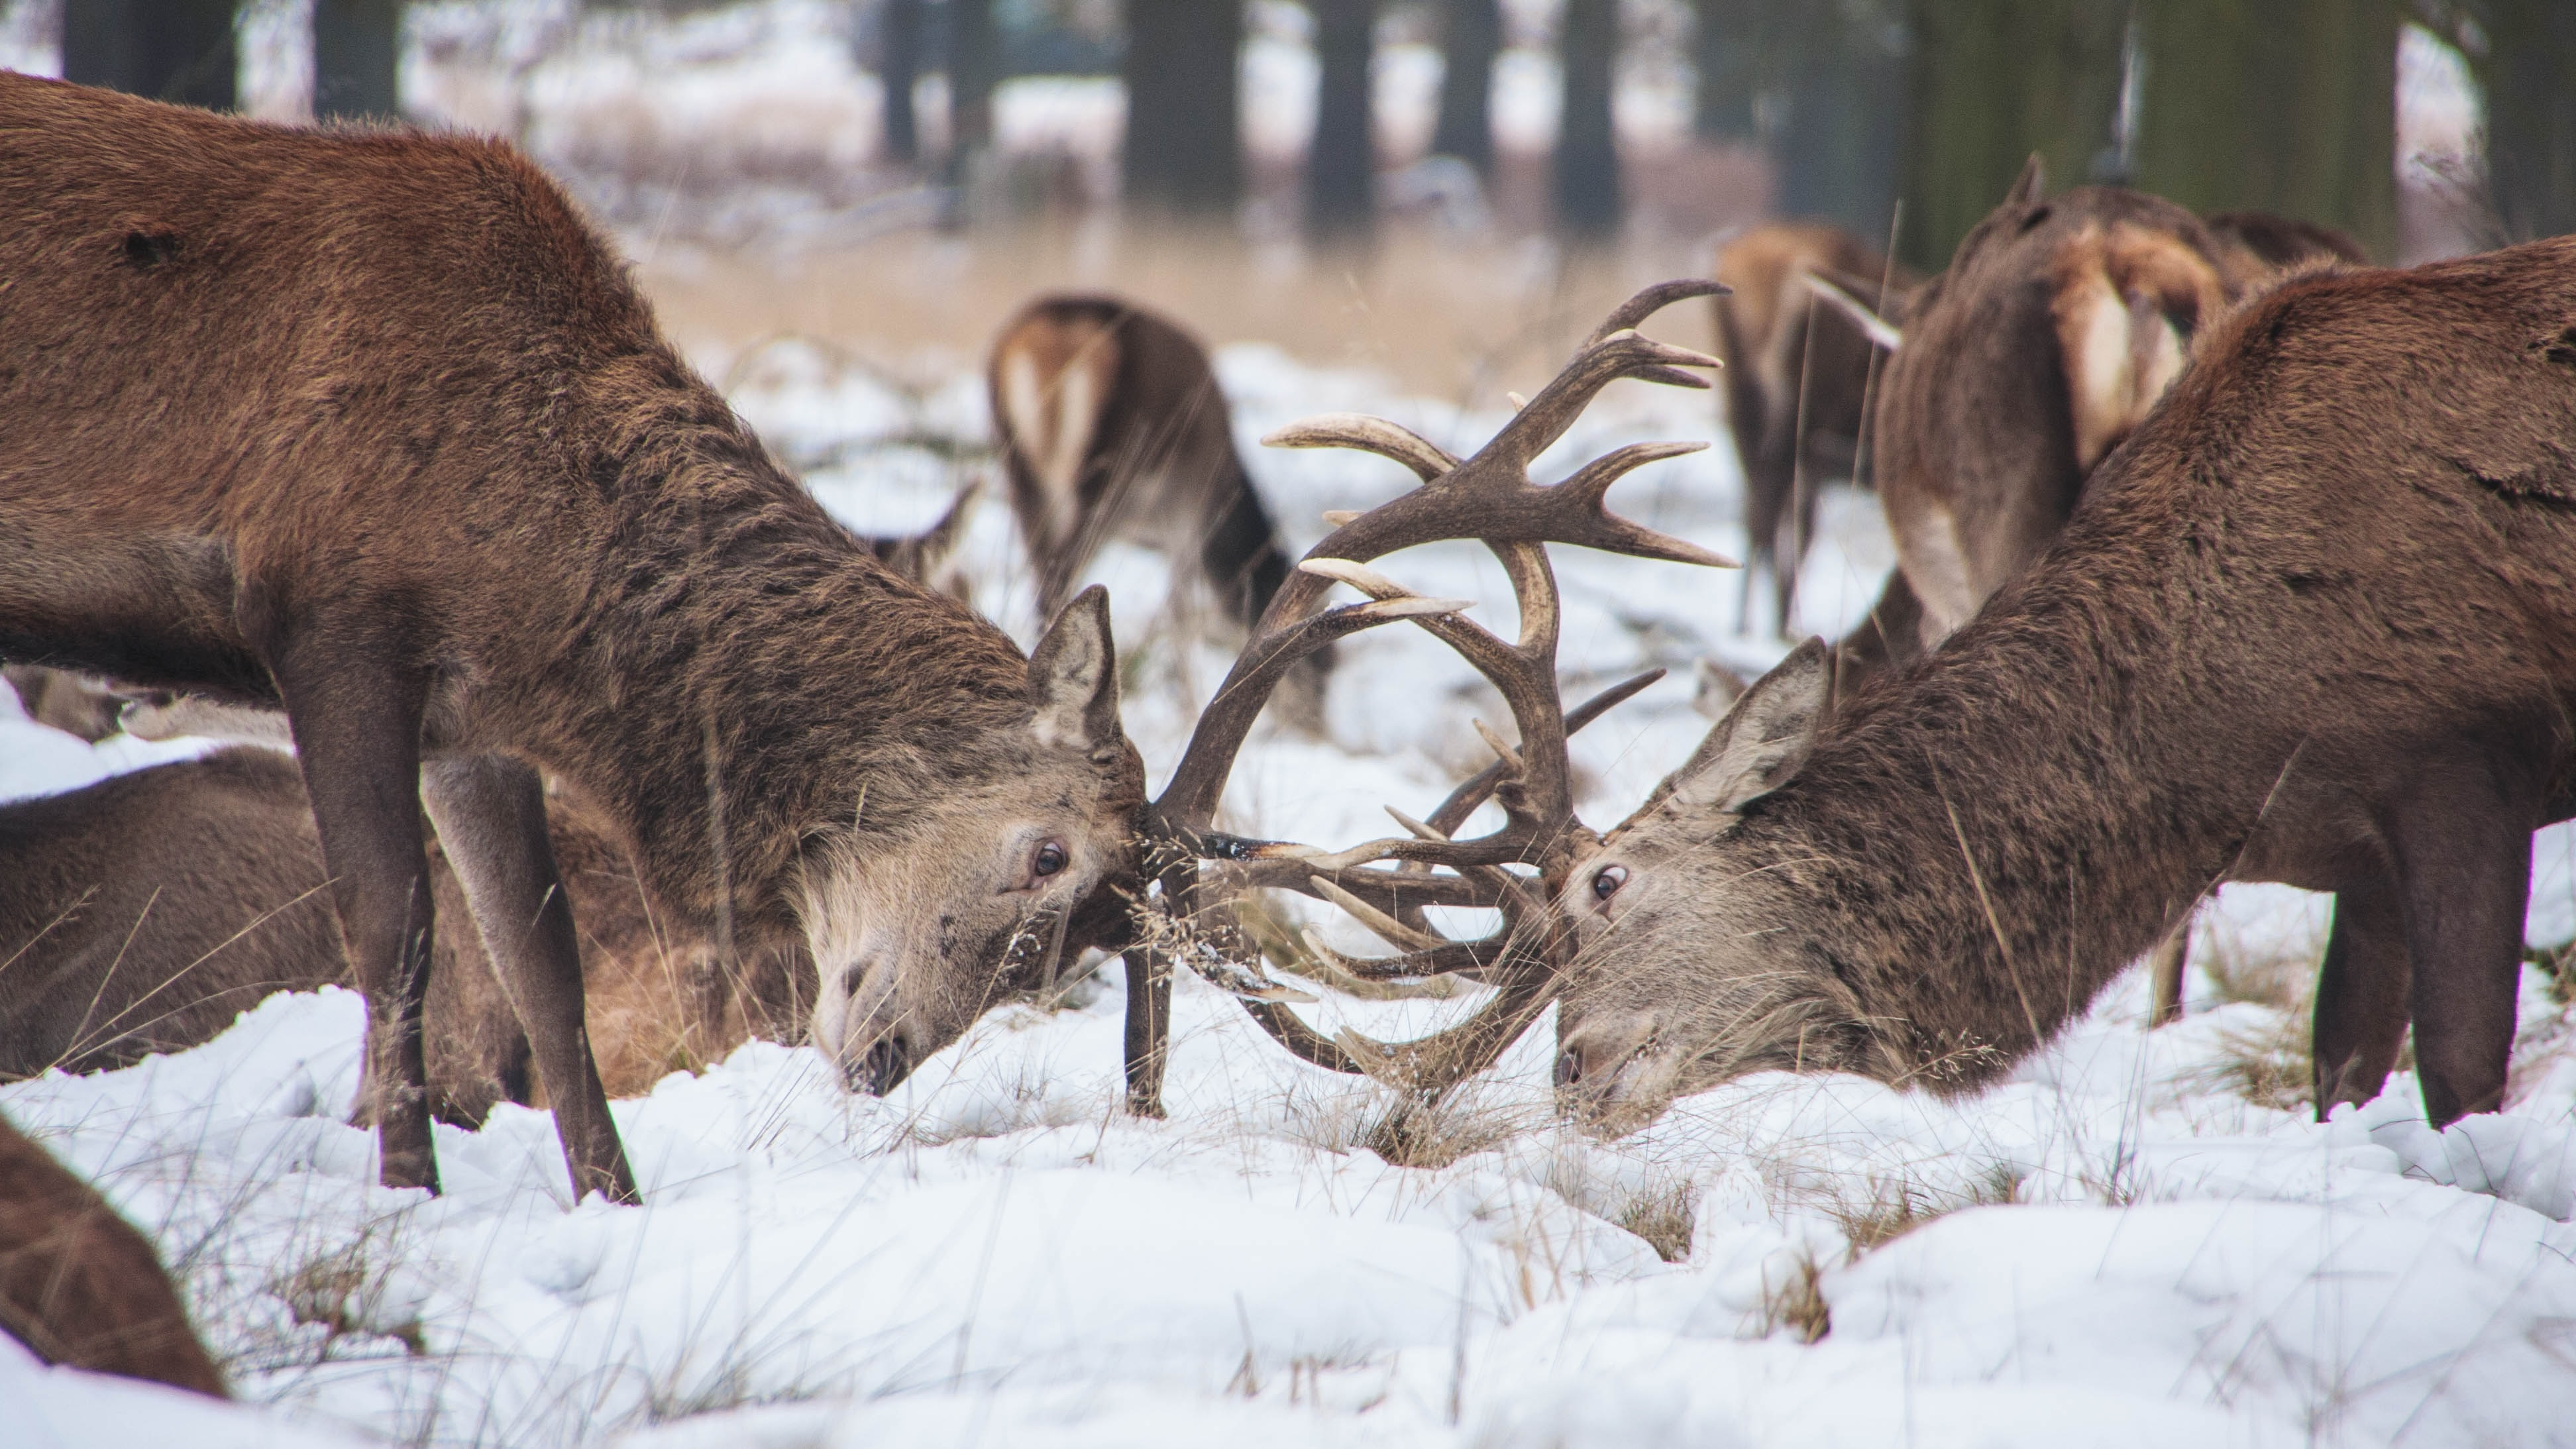 Two stags interlocking horns on a snow-covered patch of grass